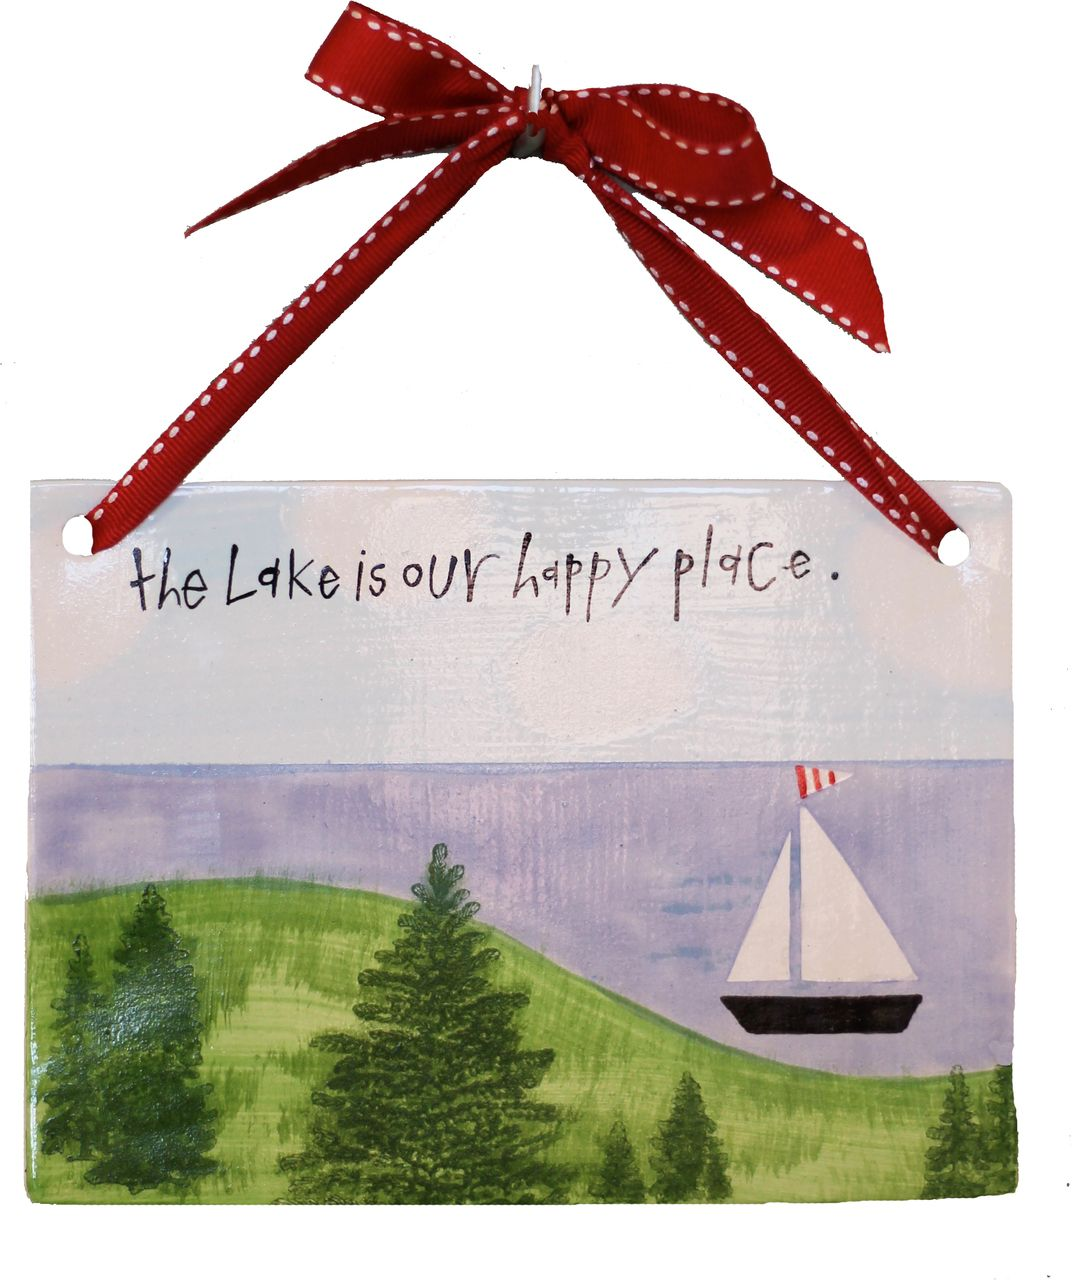 Handcrafted ceramic tile with a hand painted lake scene sail handcrafted ceramic tile with a hand painted lake scene sail boat and wording dailygadgetfo Images